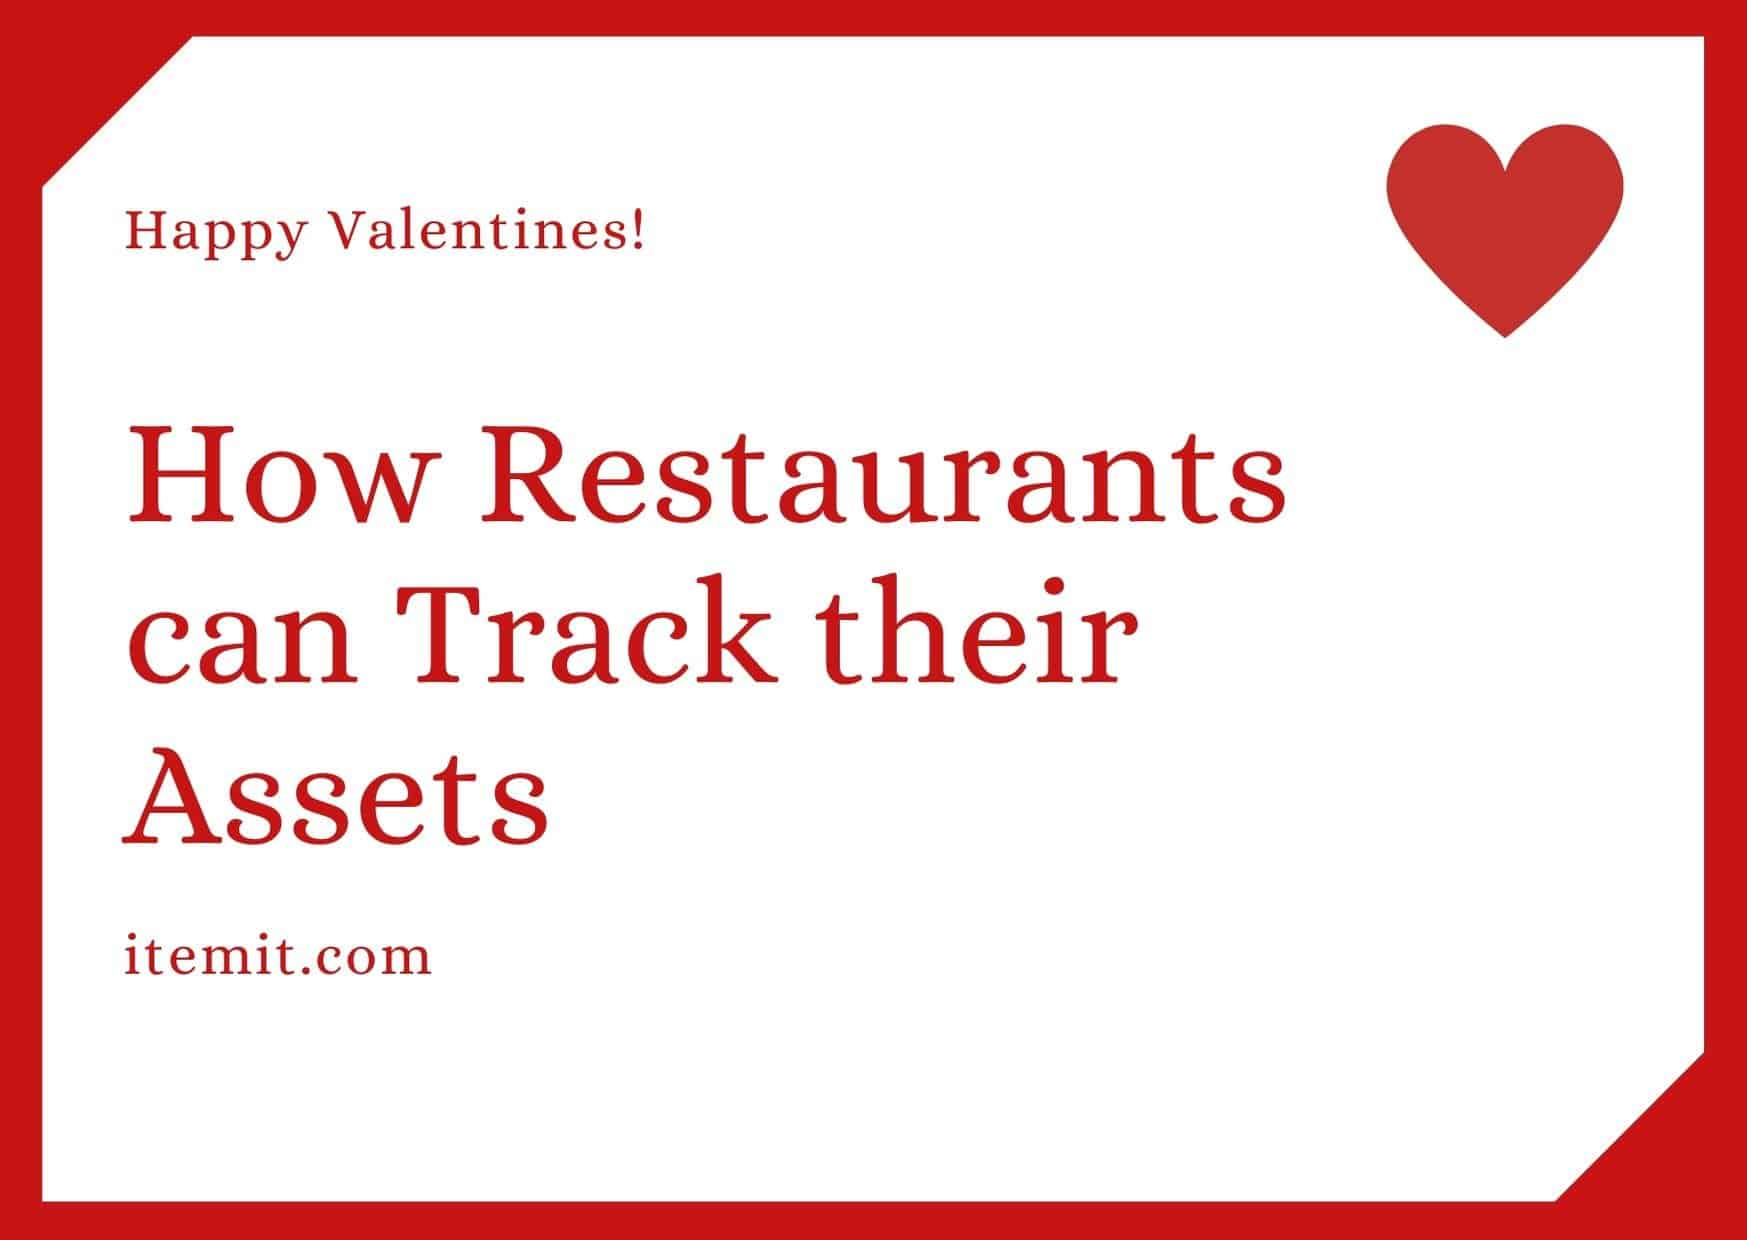 how restaurants can track their assets with asset tracking software